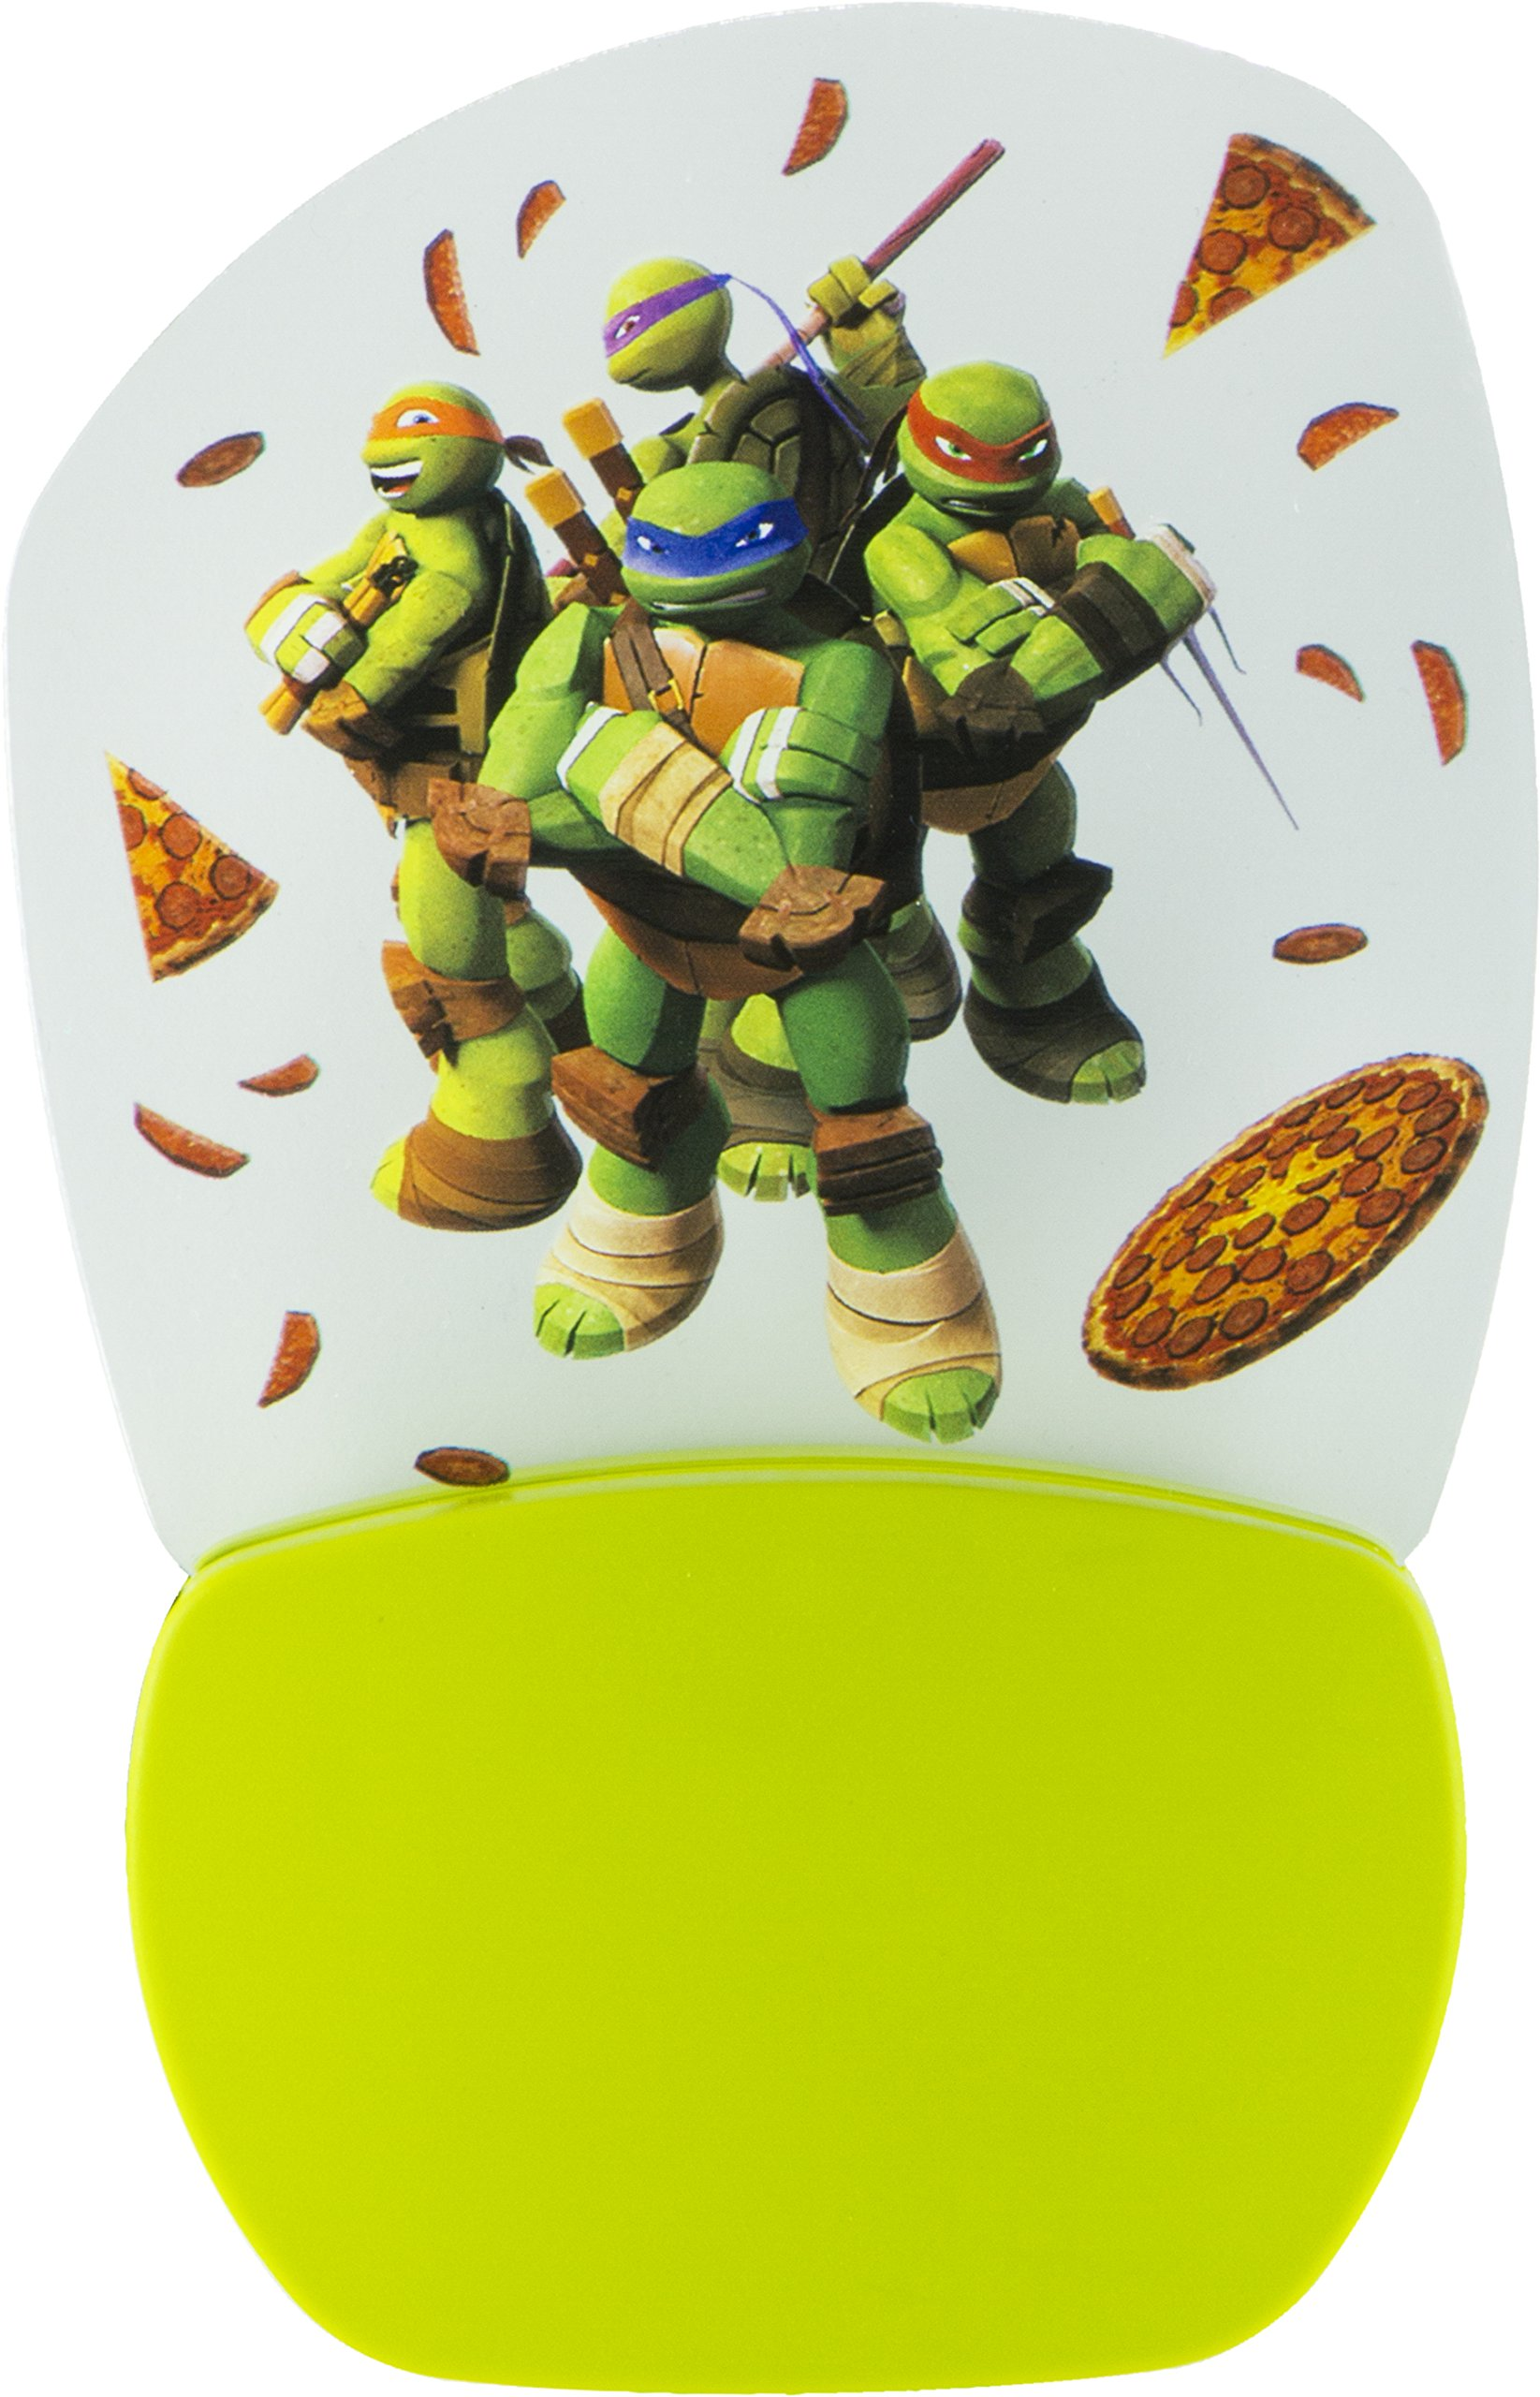 Nickelodeon Teenage Mutant Ninja Turtles 3D Motion Effect Night Light, Soft White Glow, Light Sensing, Long Life and Low Energy LED, 30767